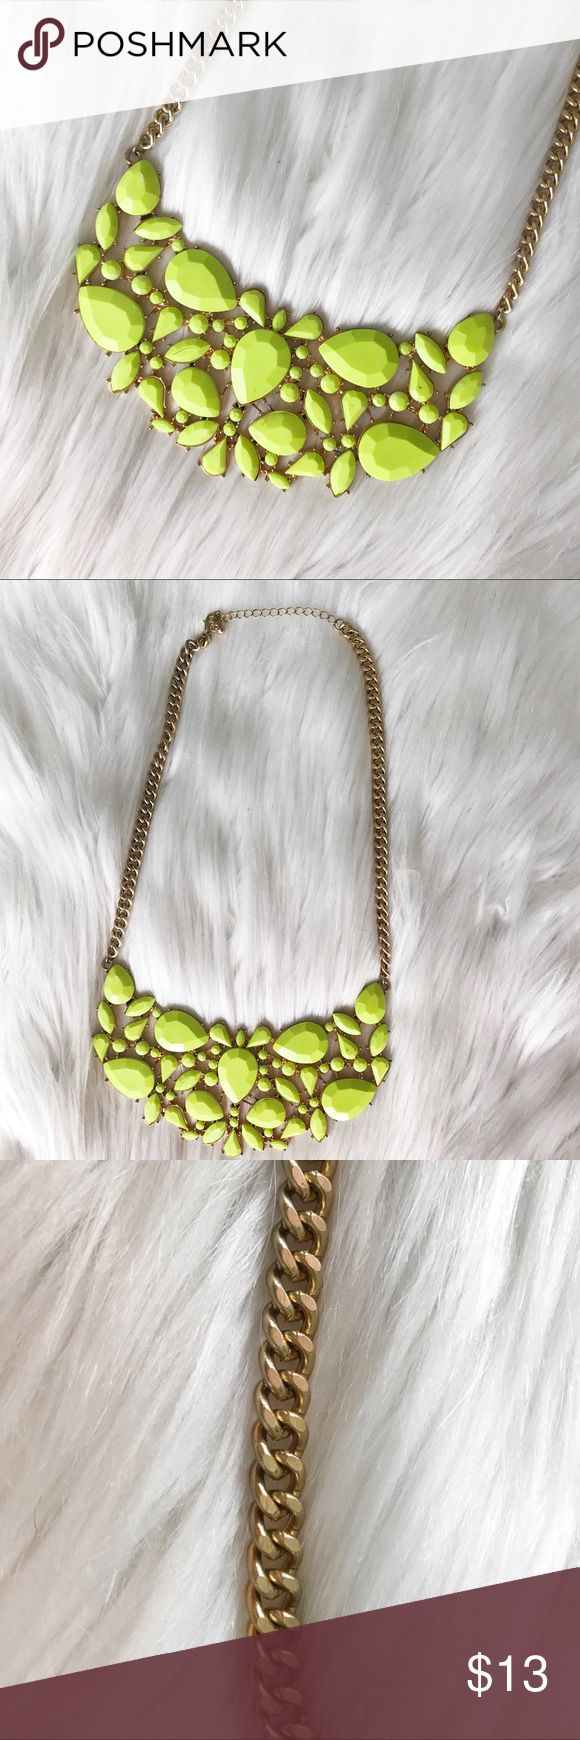 Neon statement necklace Neon green/ yellow statement necklace with gold chain and settings. There is some slight light marks as shown in last photo. Hardly used Jewelry Necklaces